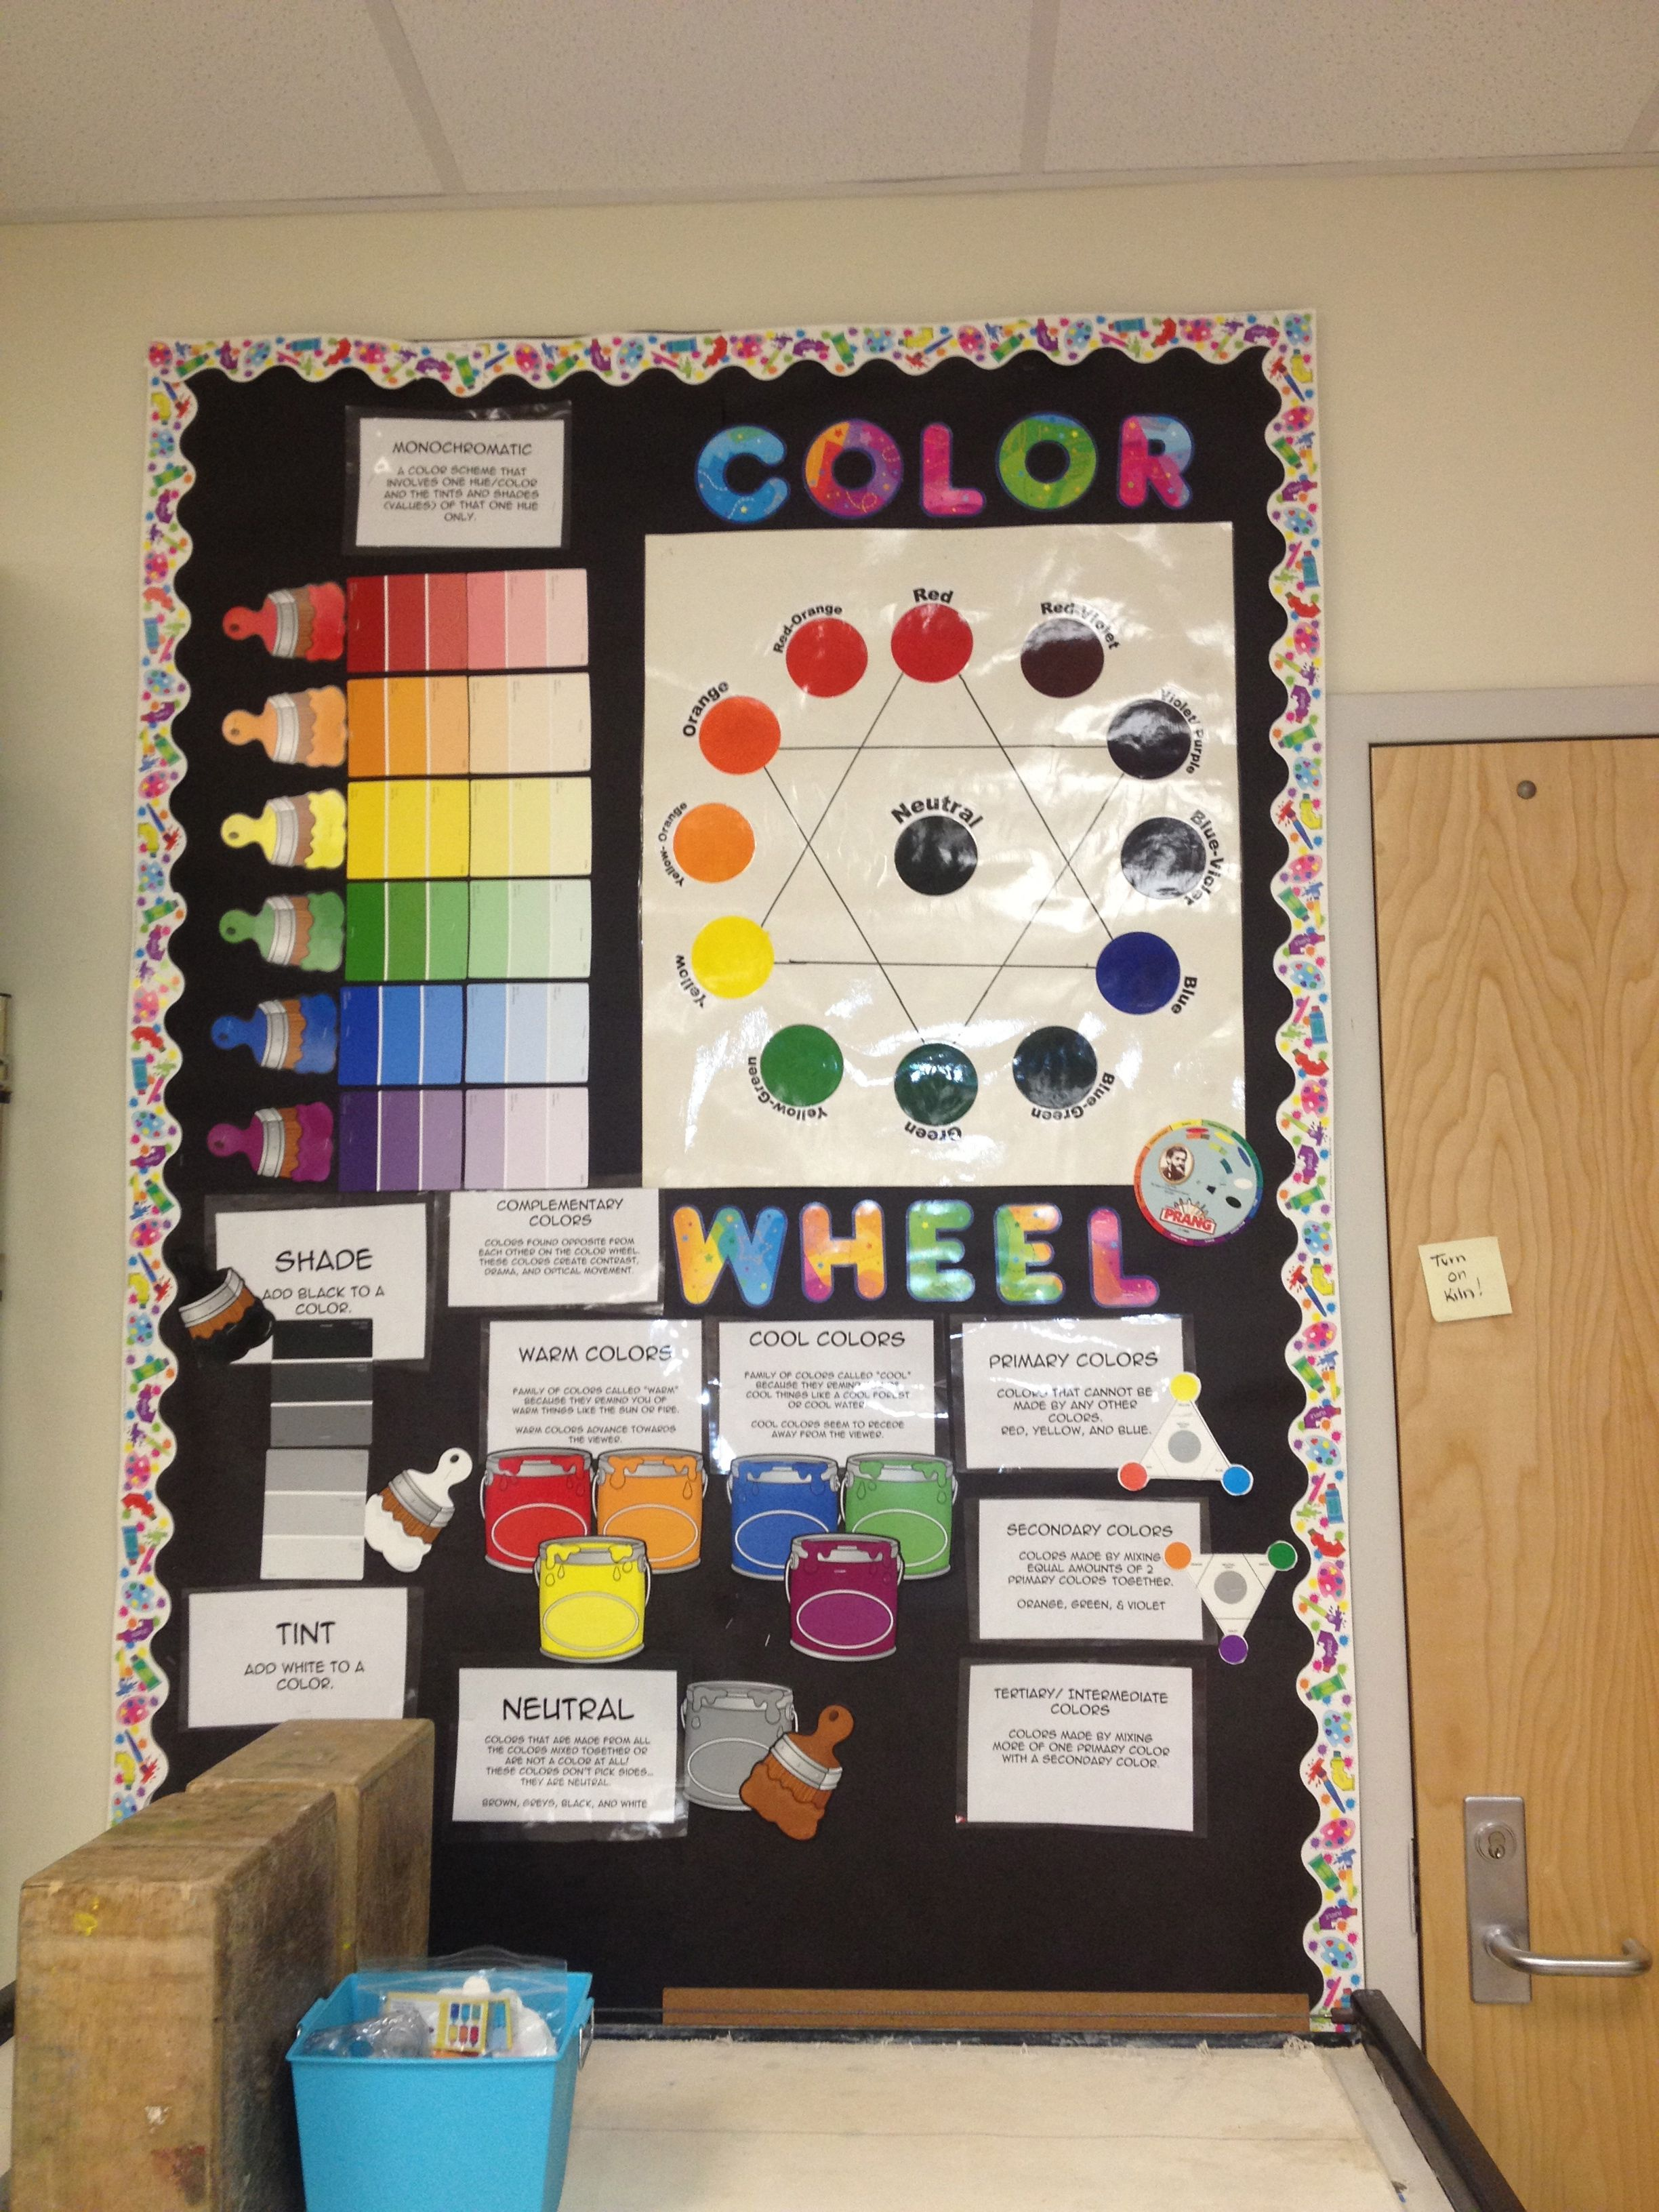 Color wheel art lesson for second grade - Art Room Bulletin Board Ideas Elements Of Art Bulletin Board Idea That Includes The Color Wheel Paint Swatches And Buckets Of Paint Color Groups